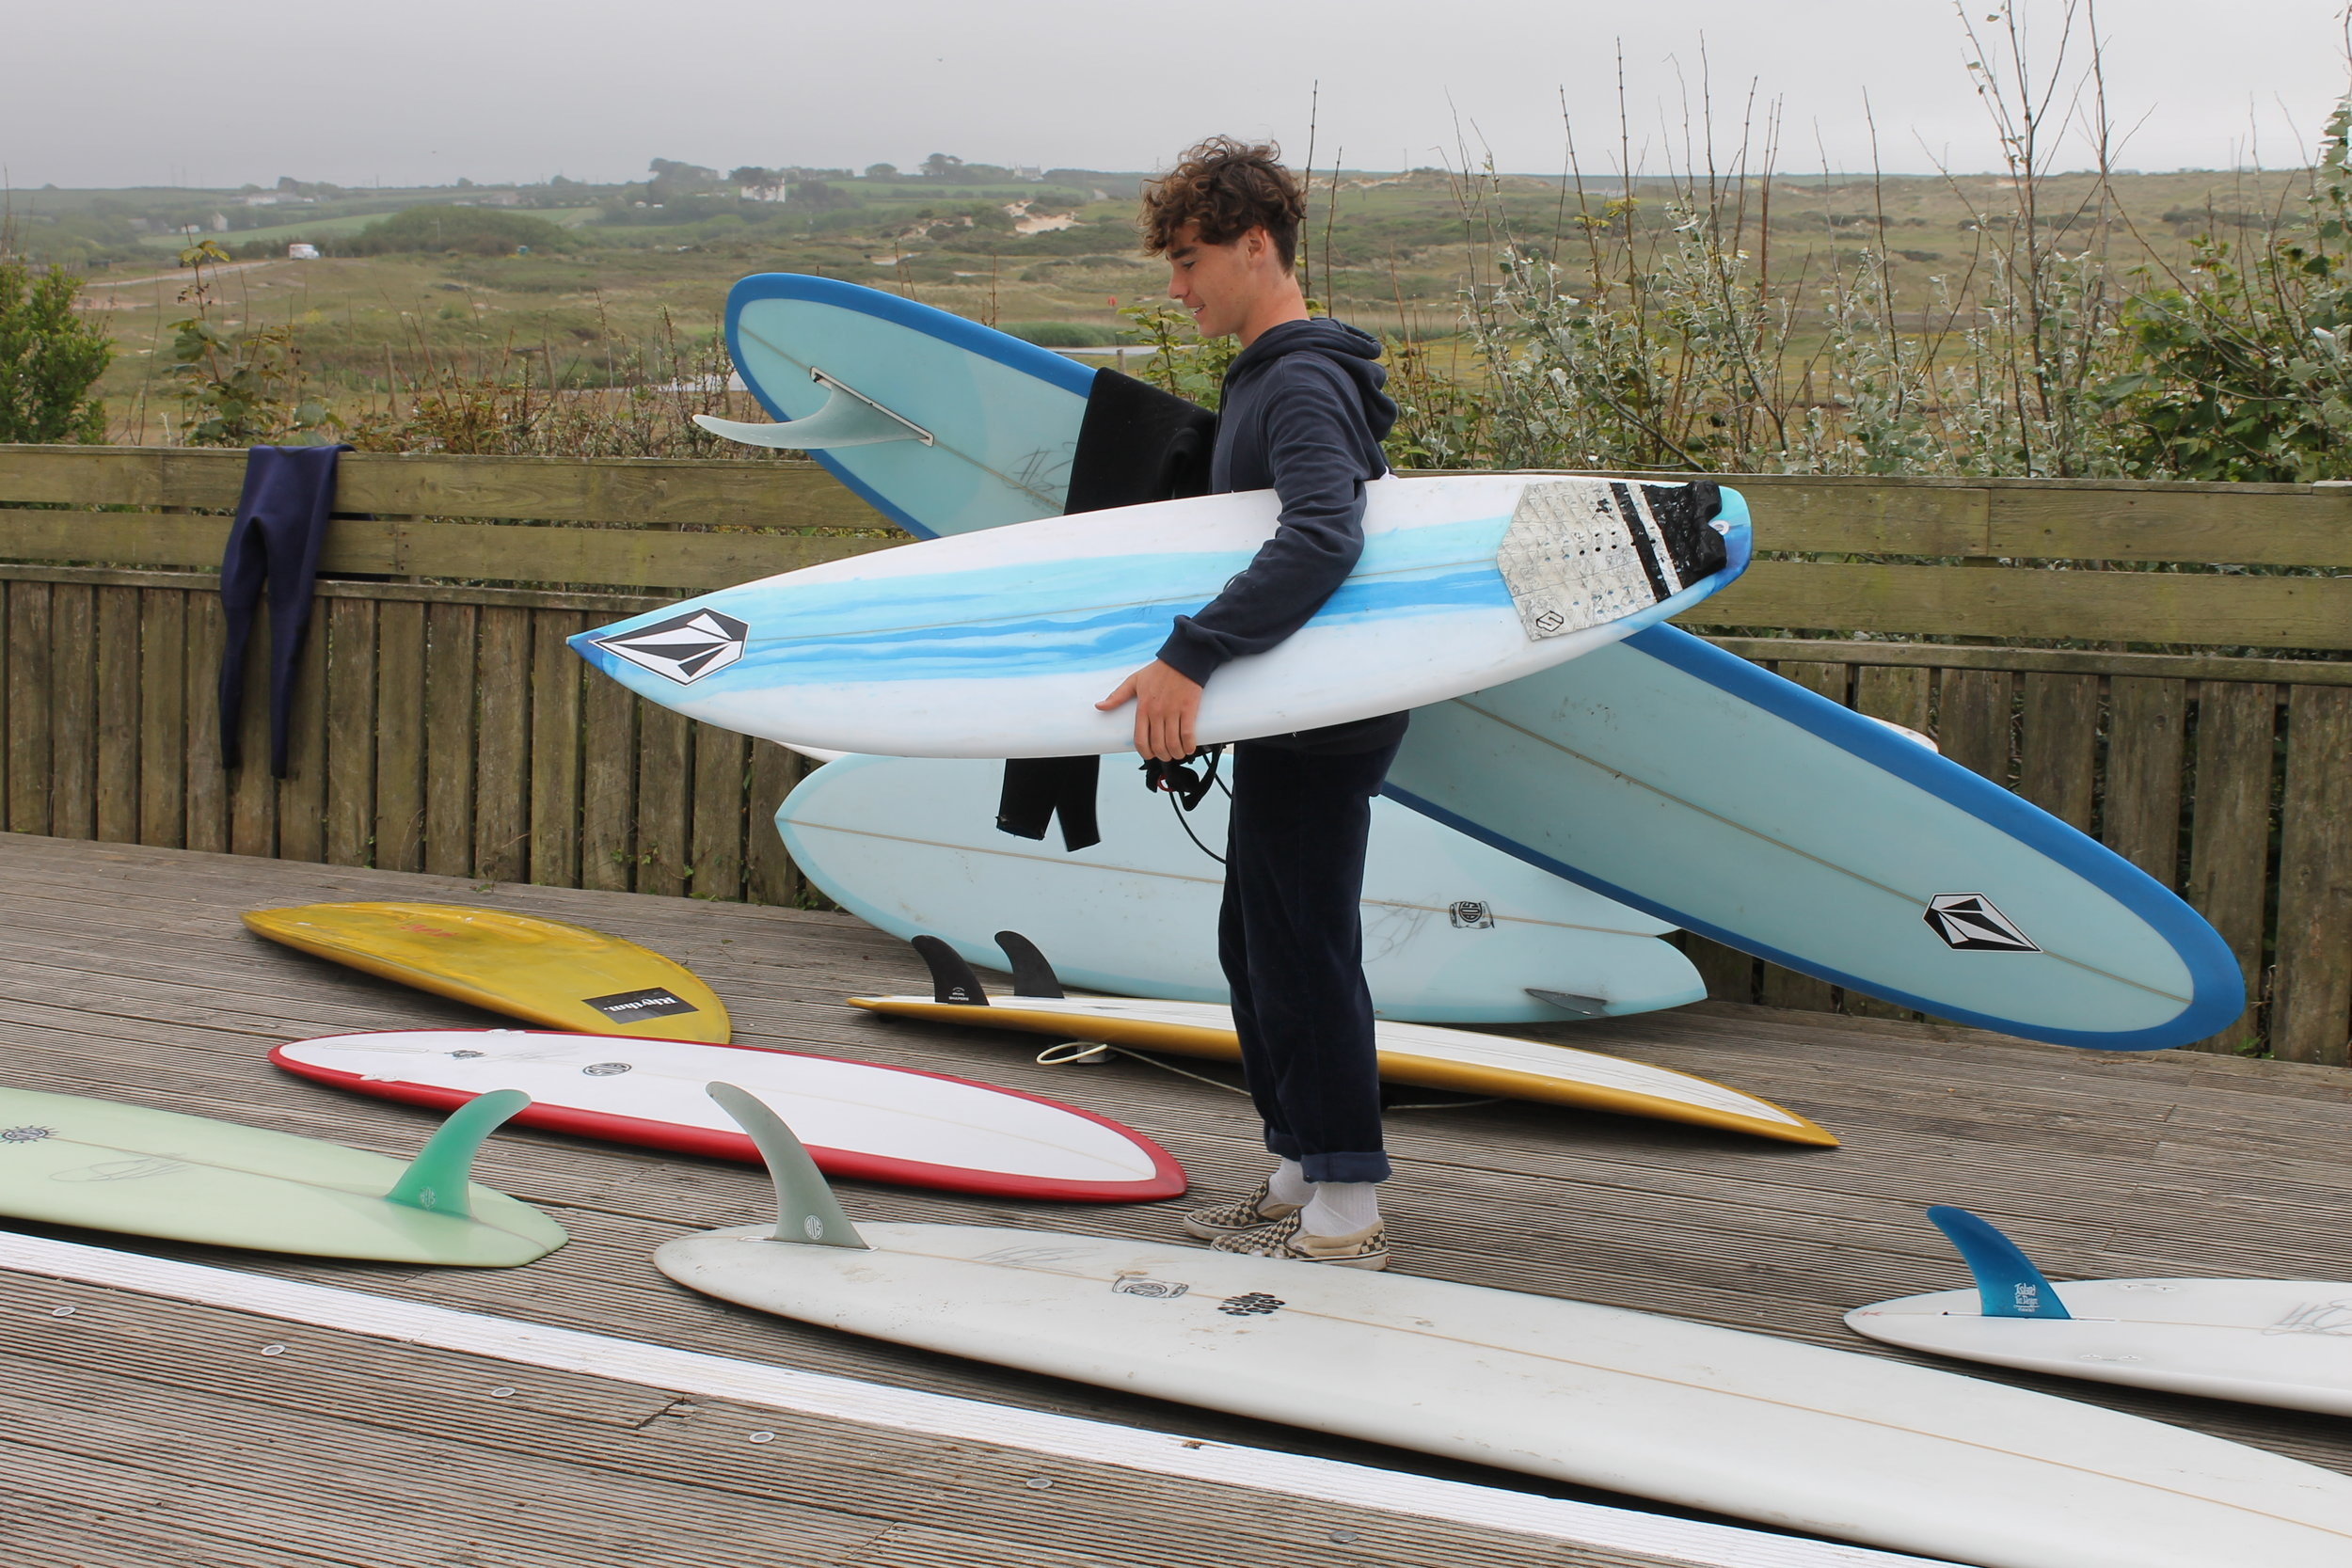 Team rider  huck_new  spoilt for choice on what board to ride